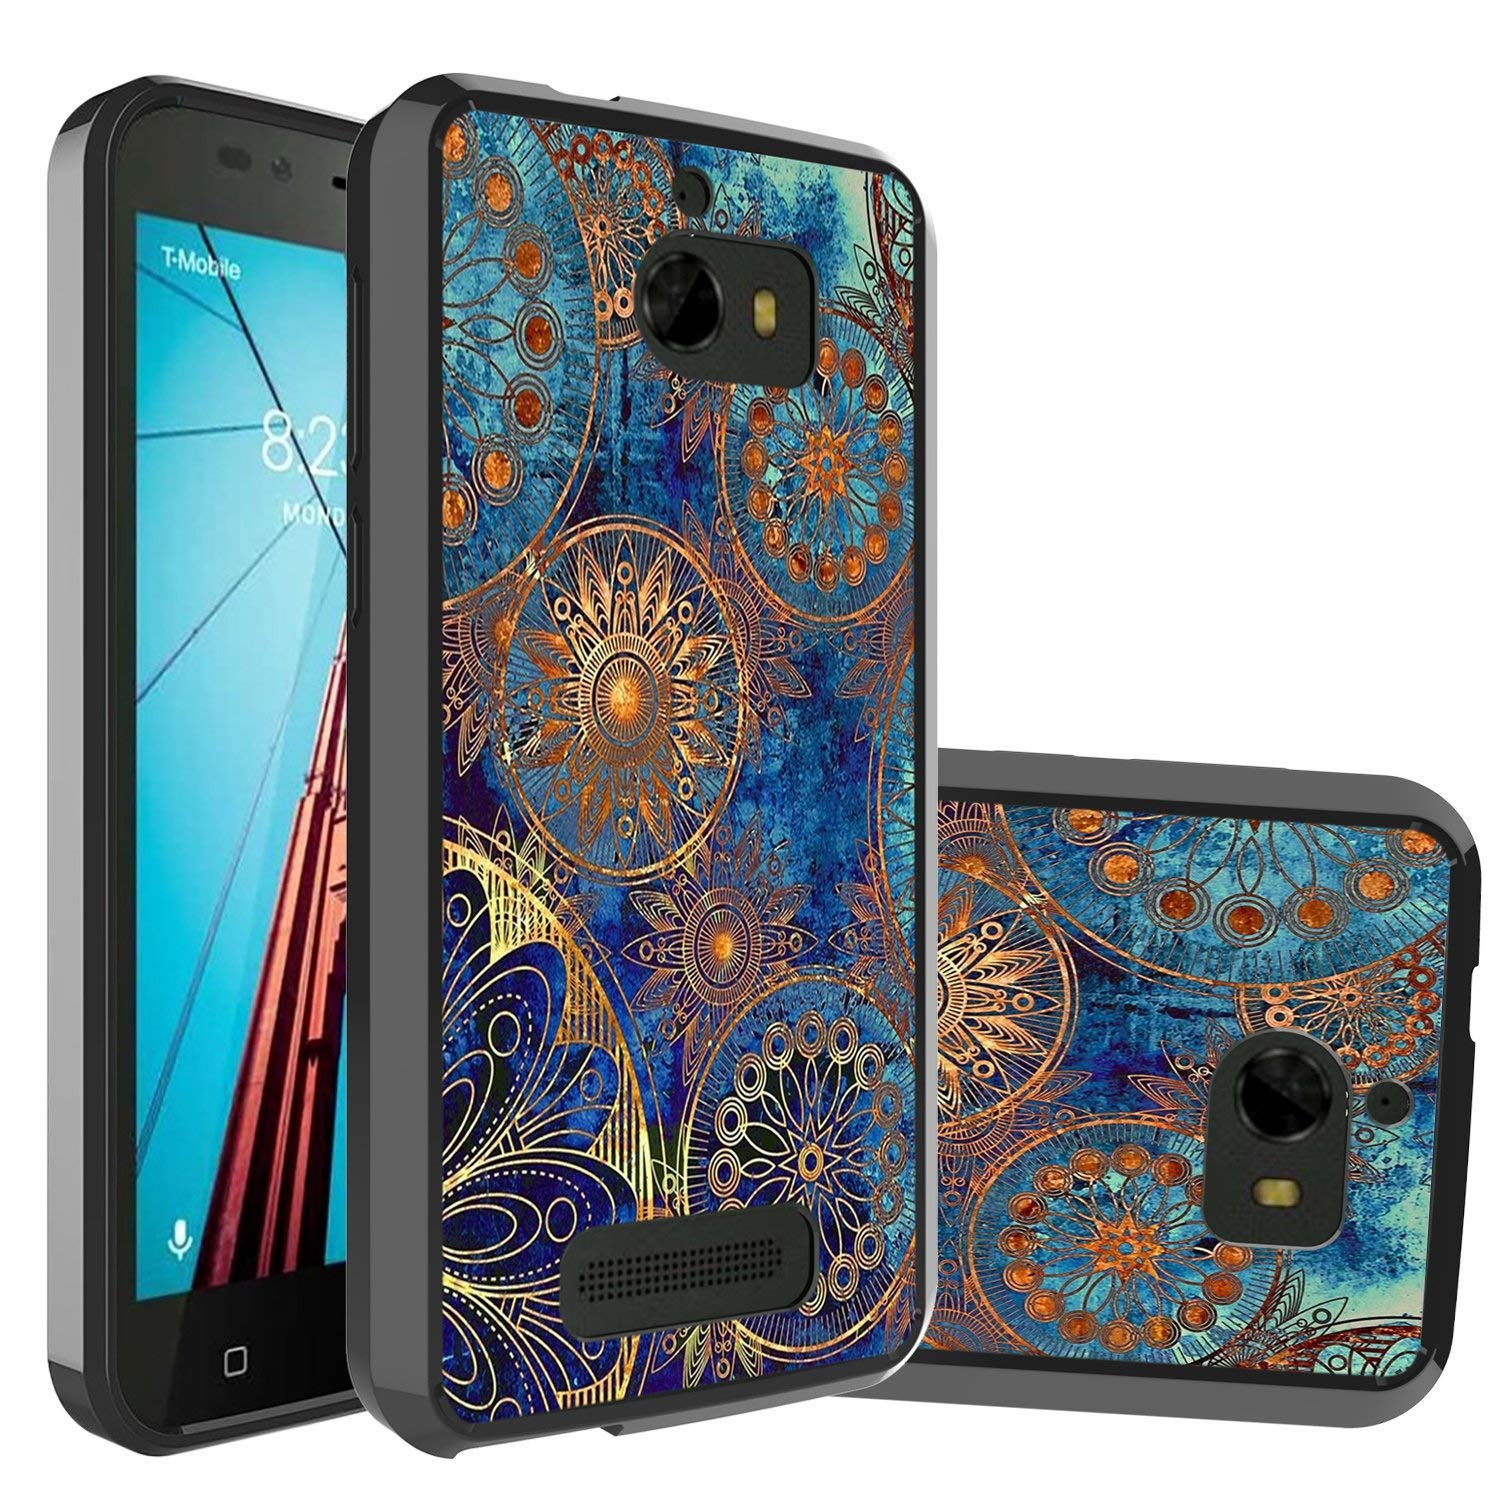 timeless design 519bb 4cba9 Coolpad Defiant Case,CoolPad 3632A Case,Wtiaw Gold Gear Colorful Ultra Slim  Acrylic Hard Cover TPU Bumper Hybrid for CoolPad 3632A-YKL Black